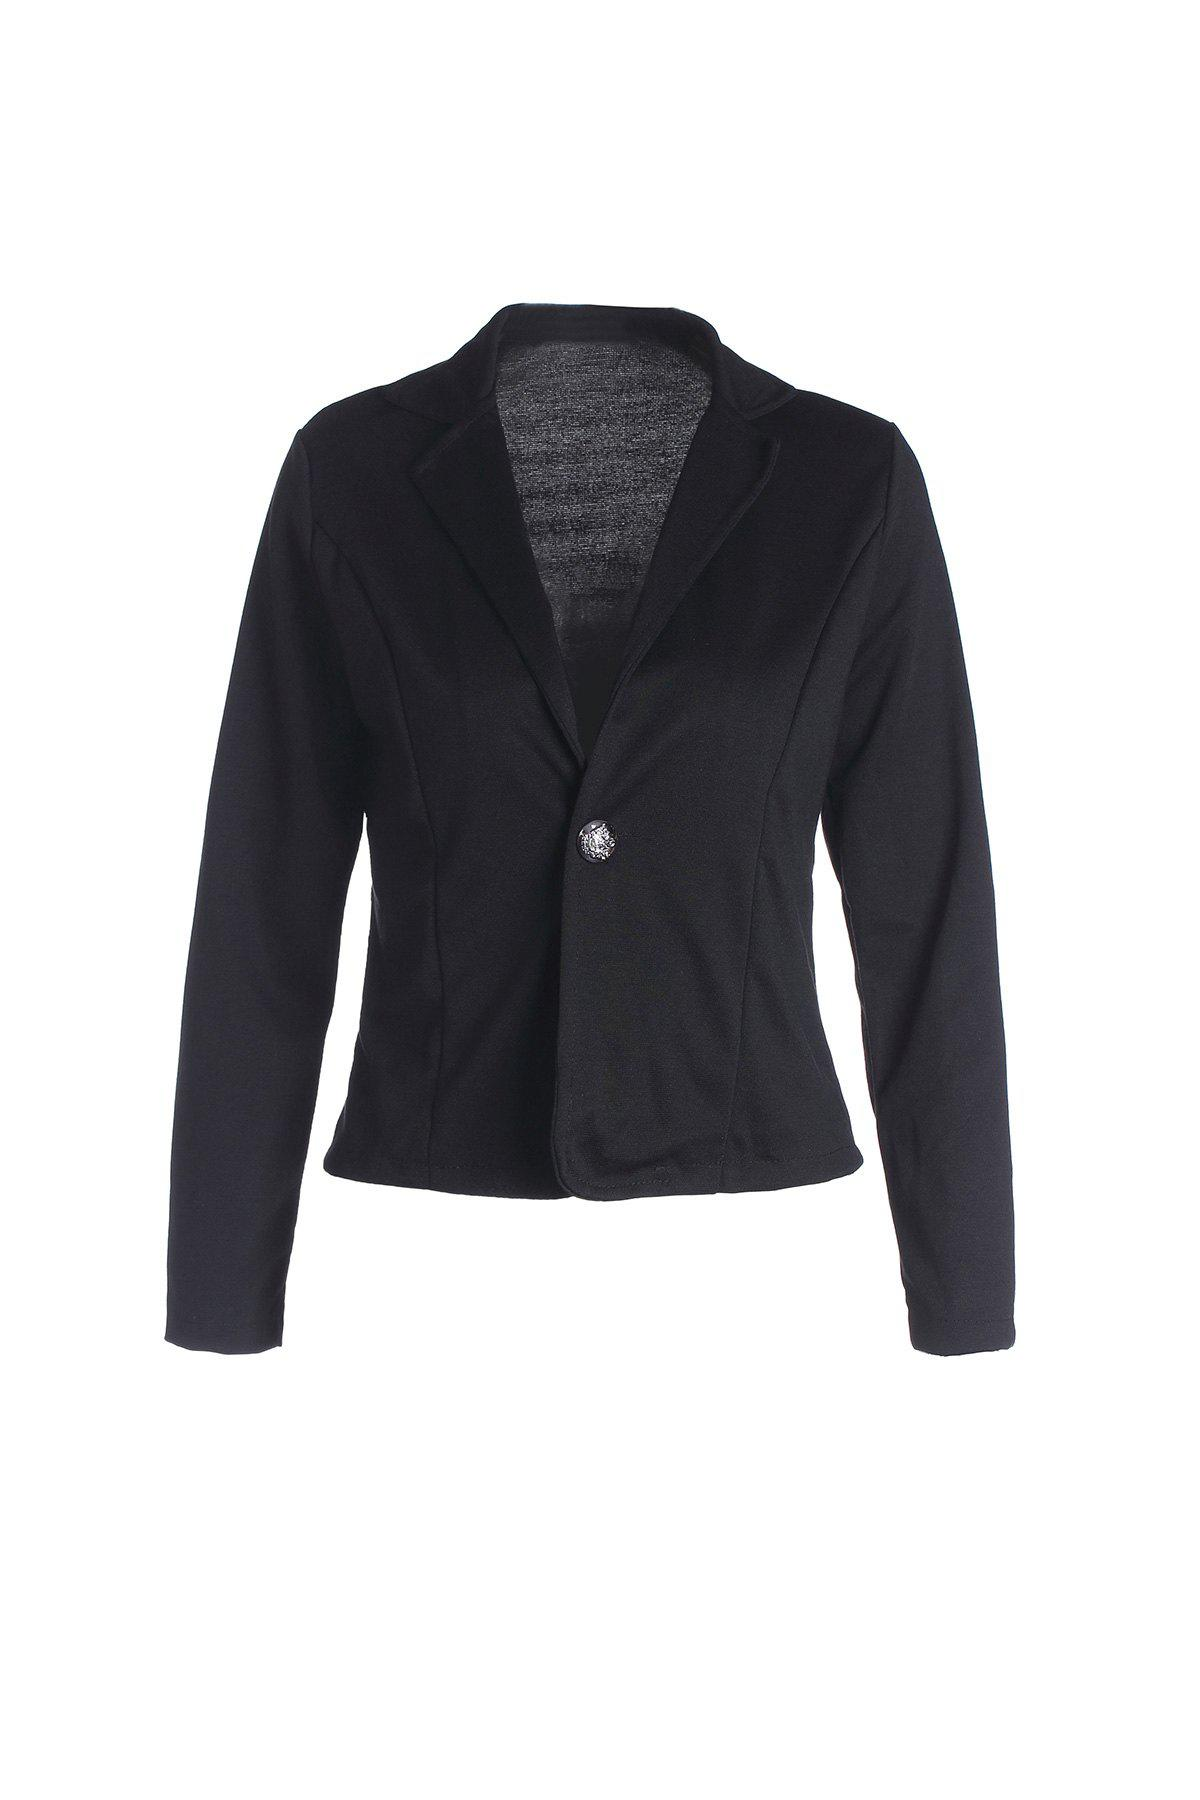 Casual Lapel Neck Solid Color Long Sleeve Plus Size Slimming Women's Blazer